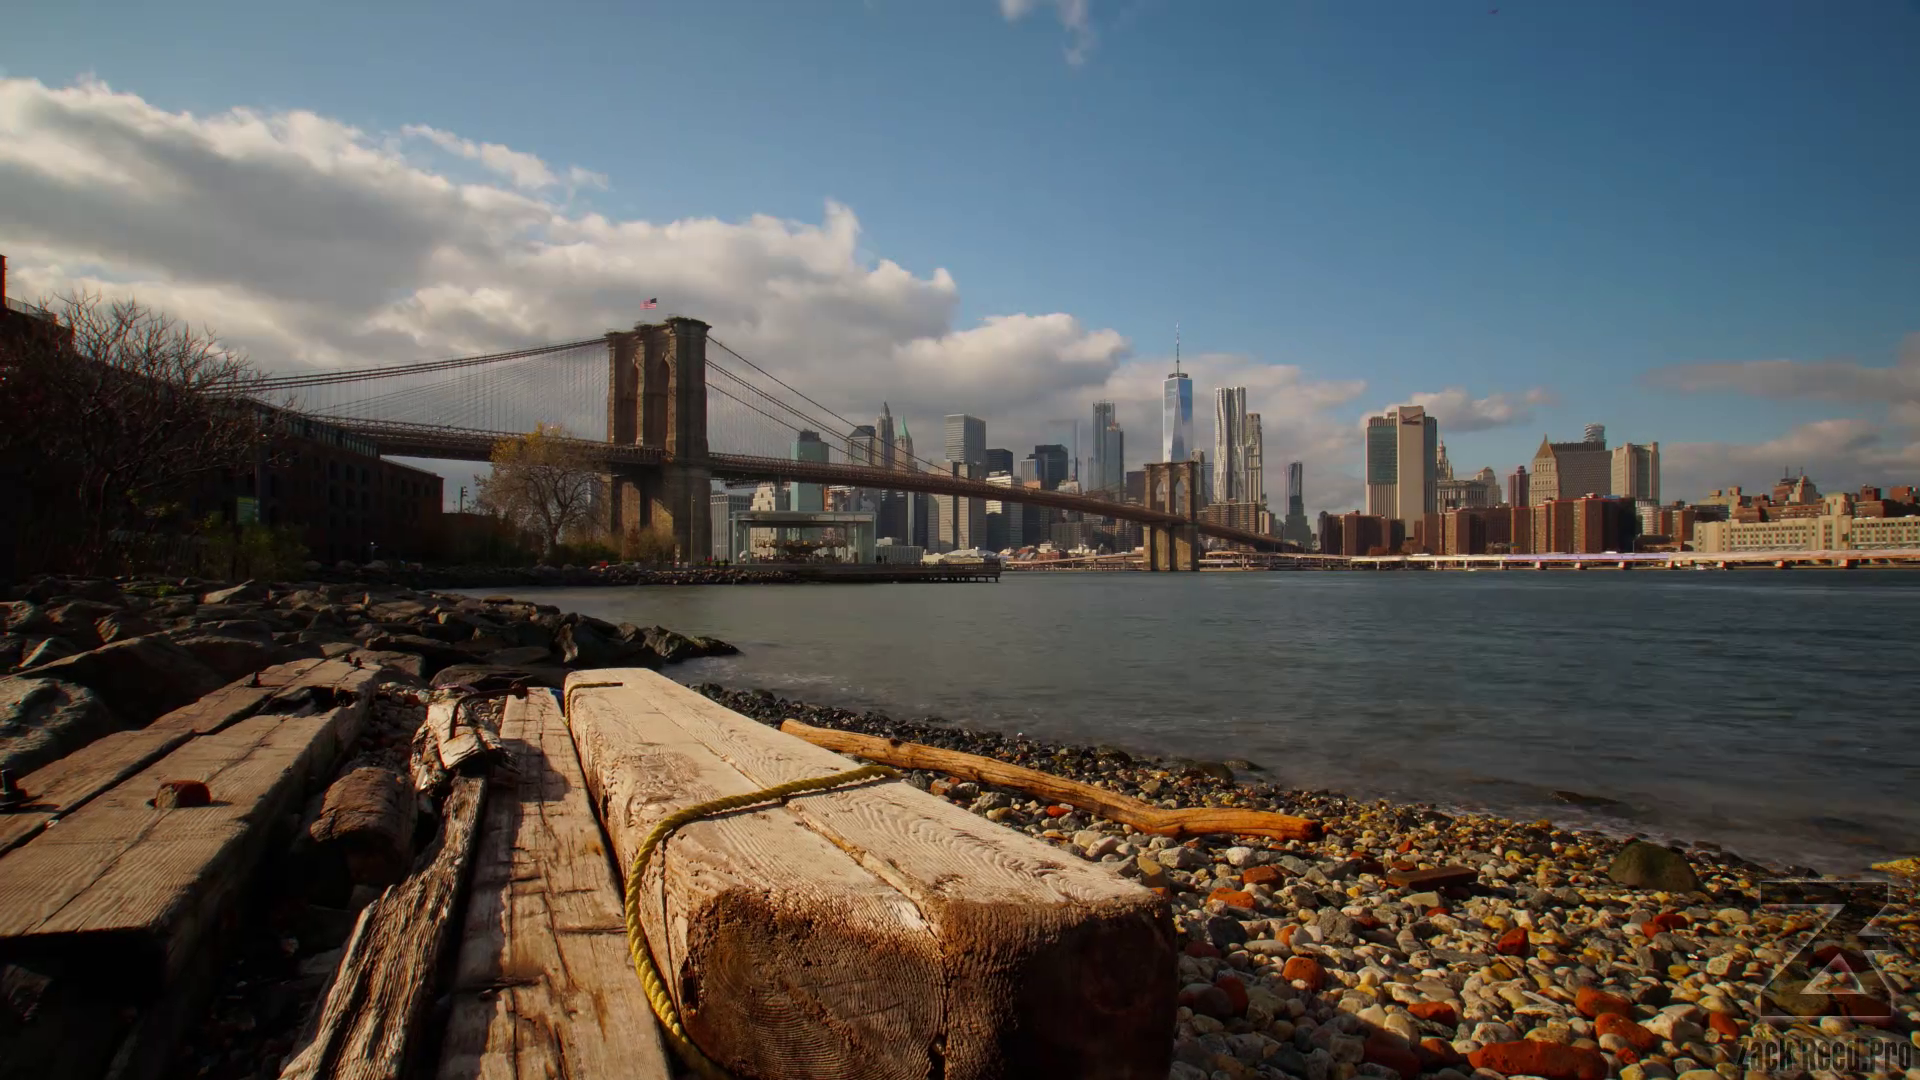 New York City Timelapse and Motion Control